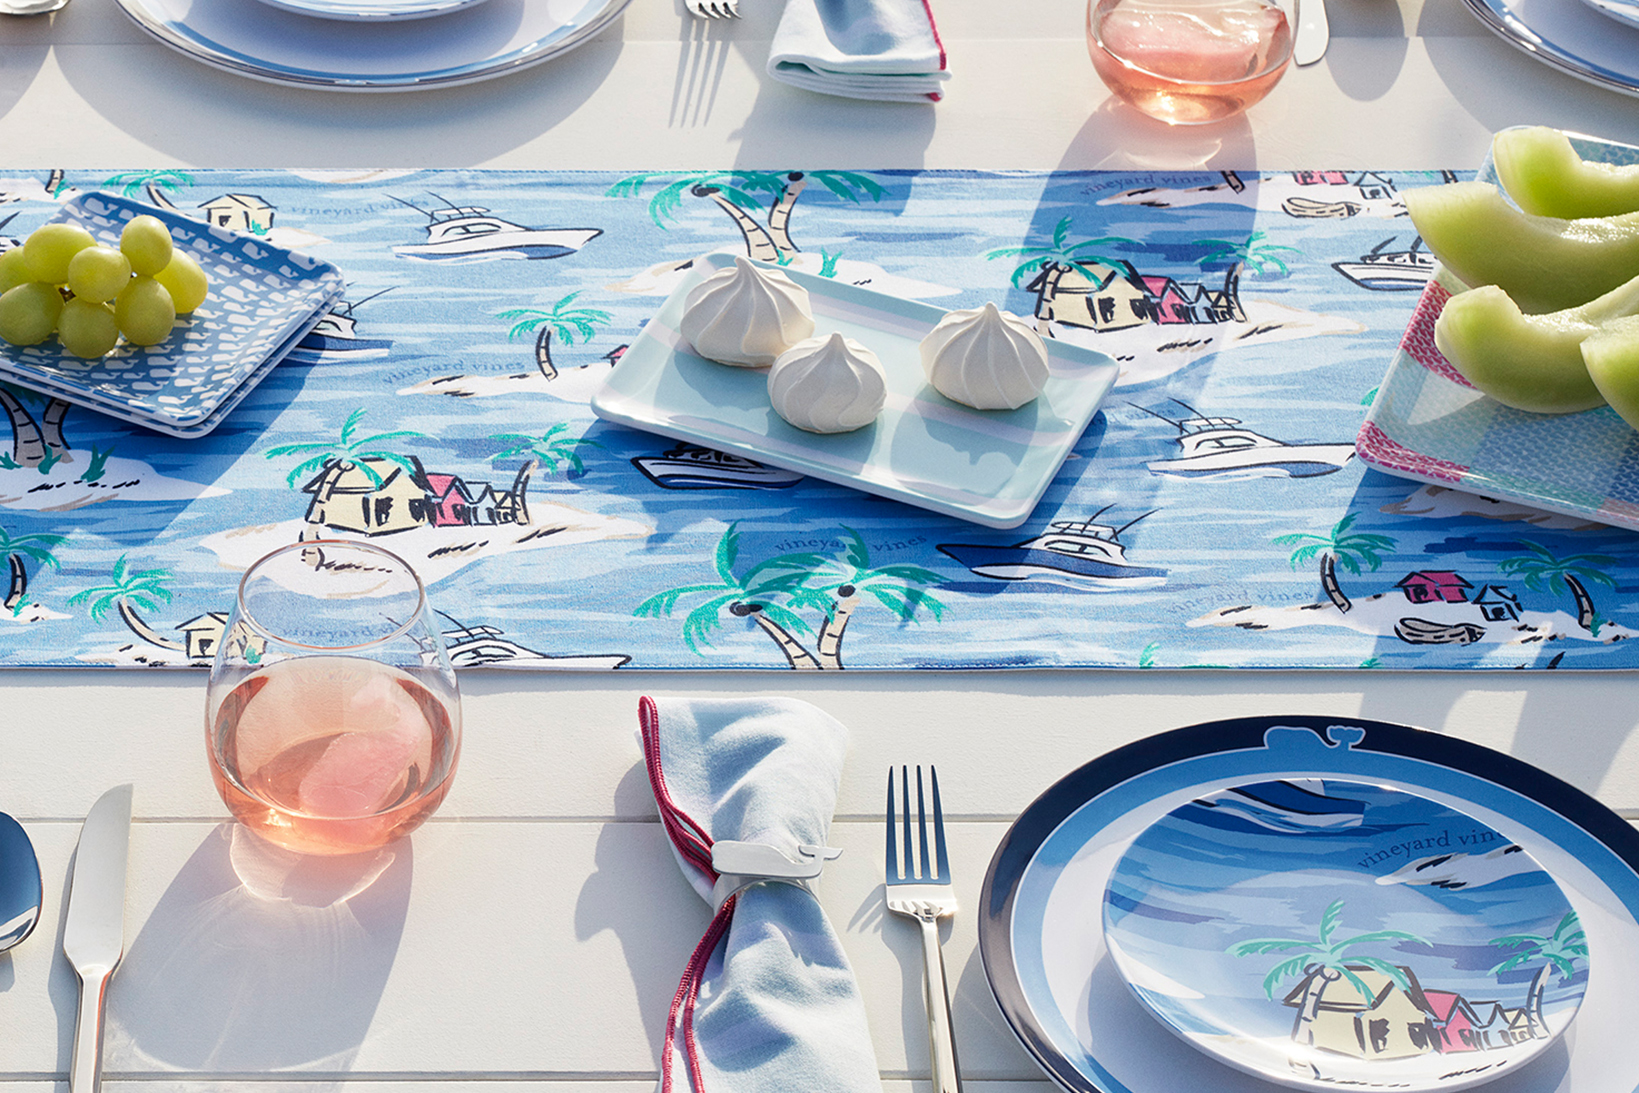 For The First Time, The Company Is Releasing A Complete Set Of Indoor And  Outdoor Decor And Entertaining Items For Your Home, Kitchen, And Pool.